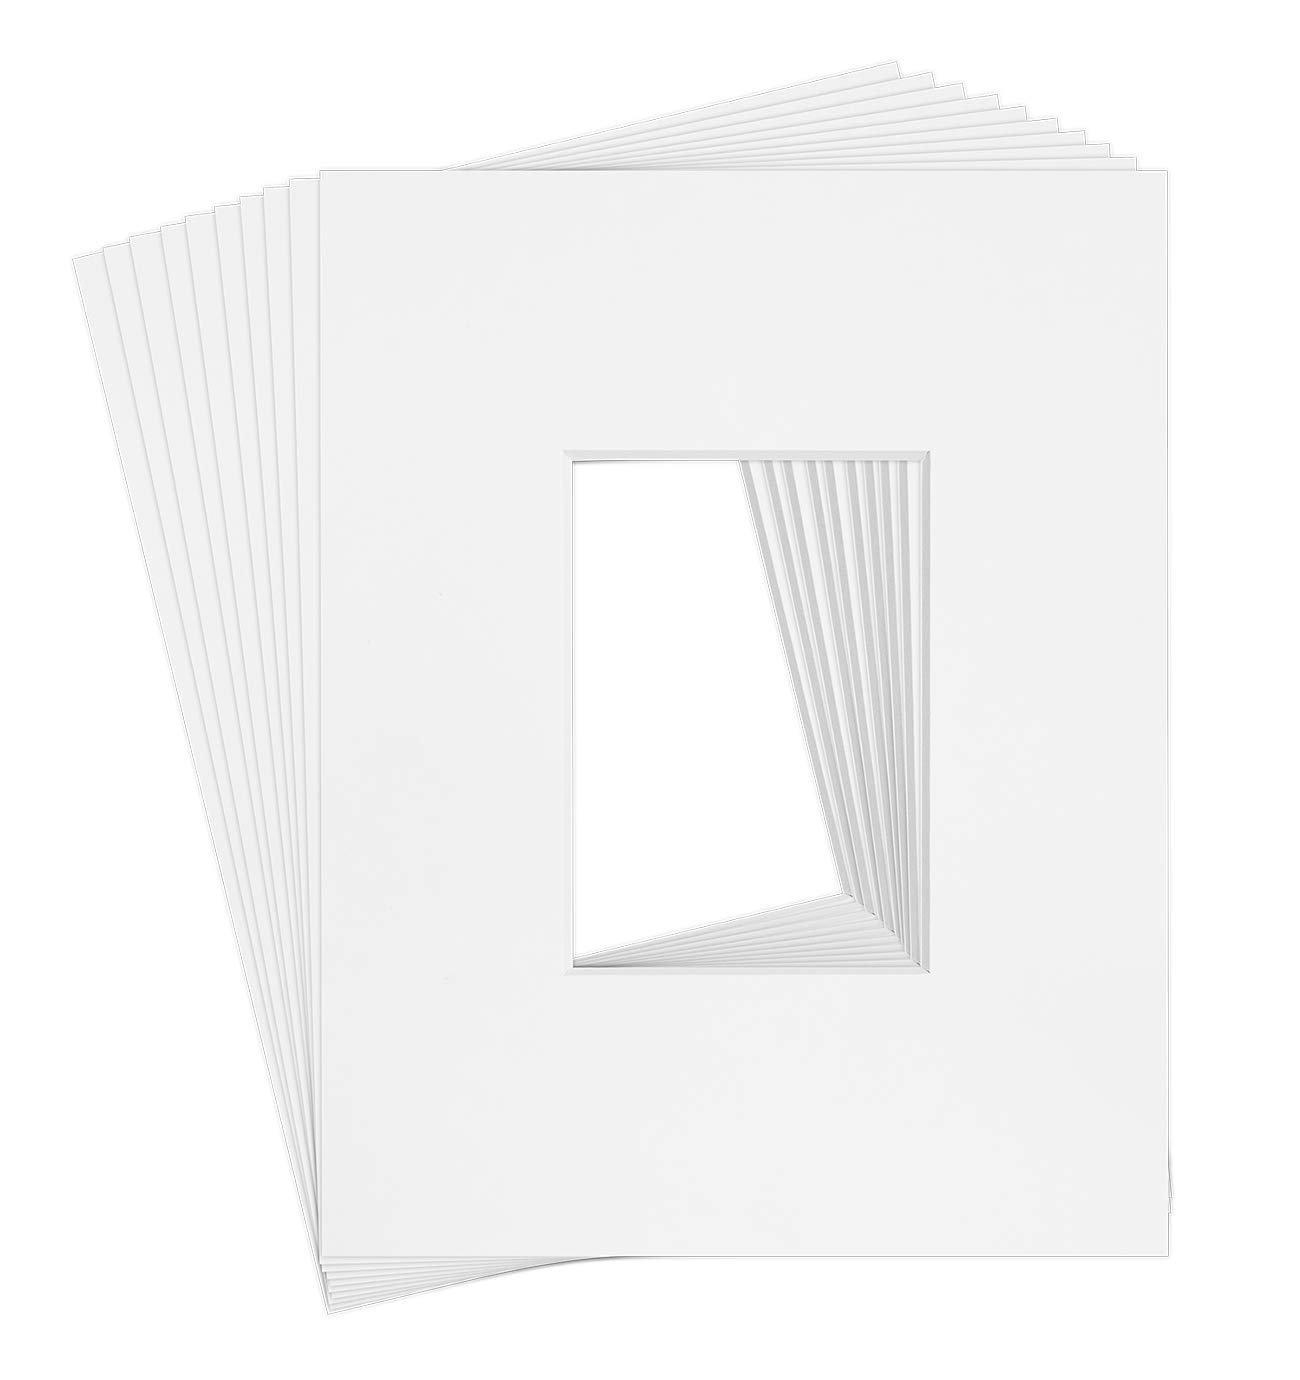 10 11x14 8-ply White Picture Mats for 5x7 Photo Picture by Golden State Art